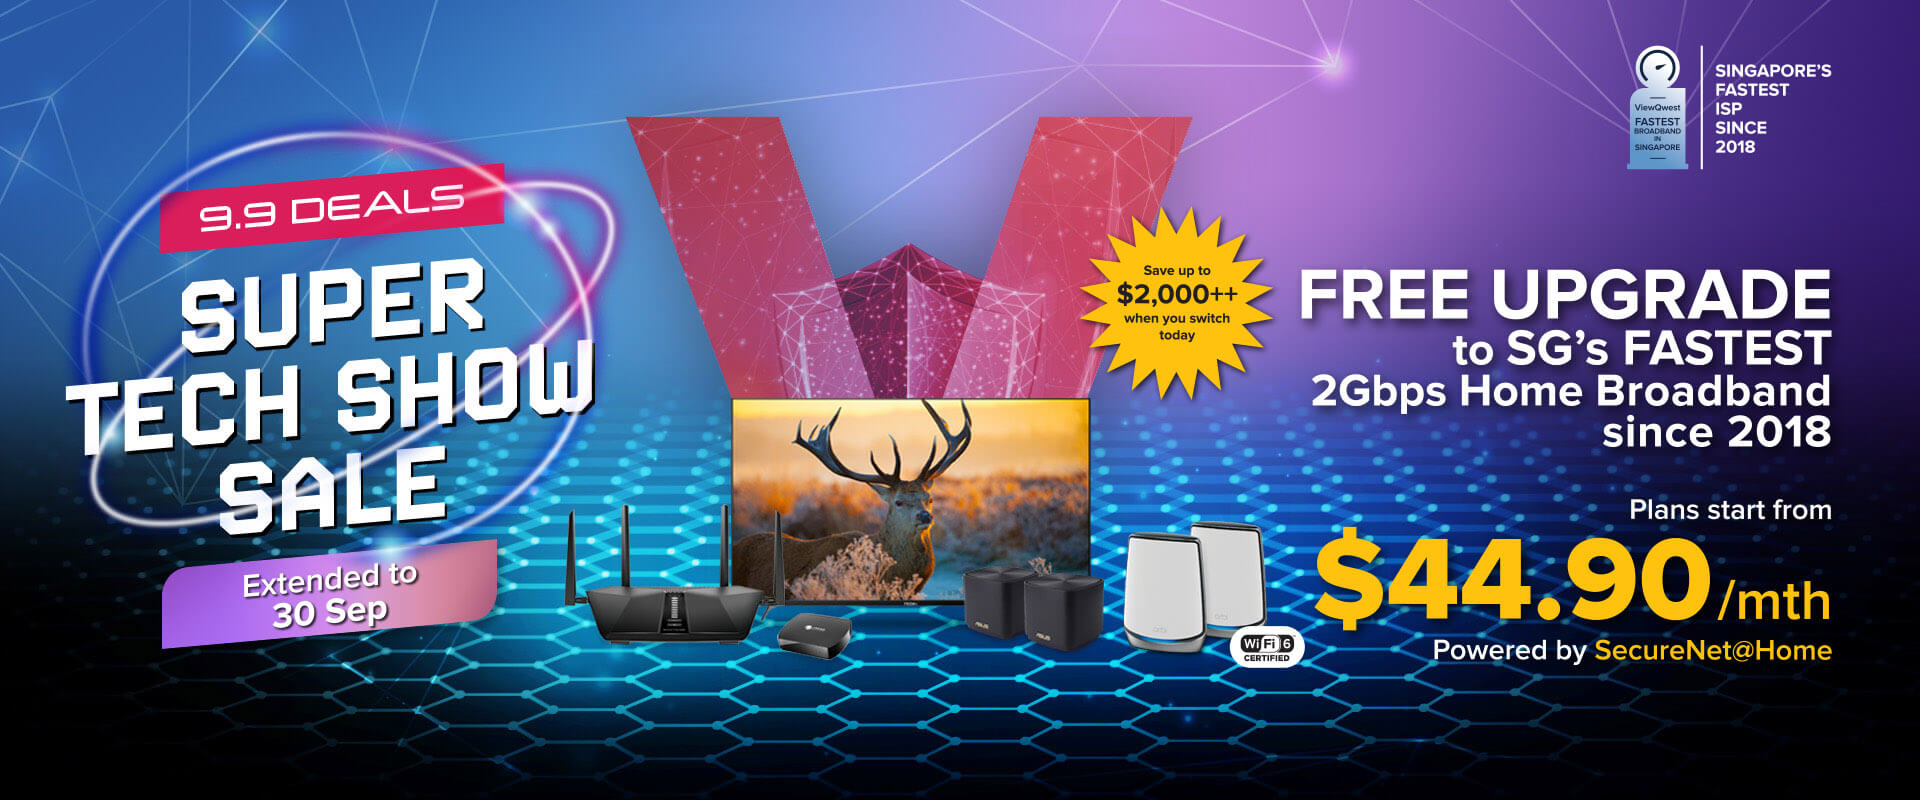 ViewQwest Entertainment 2Gbps Home Broadband Bundle - 9.9 Promotion